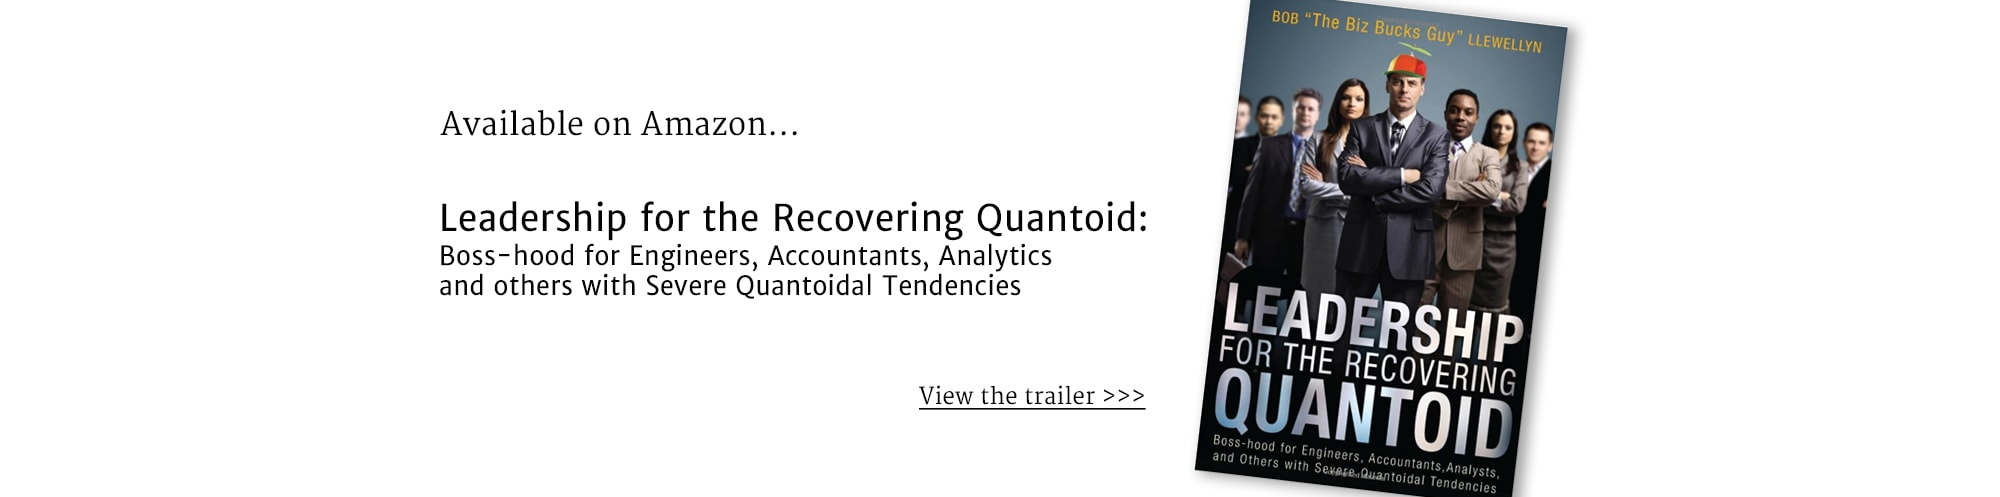 Available on Amazon... Leadership for the Recovering Quantoid